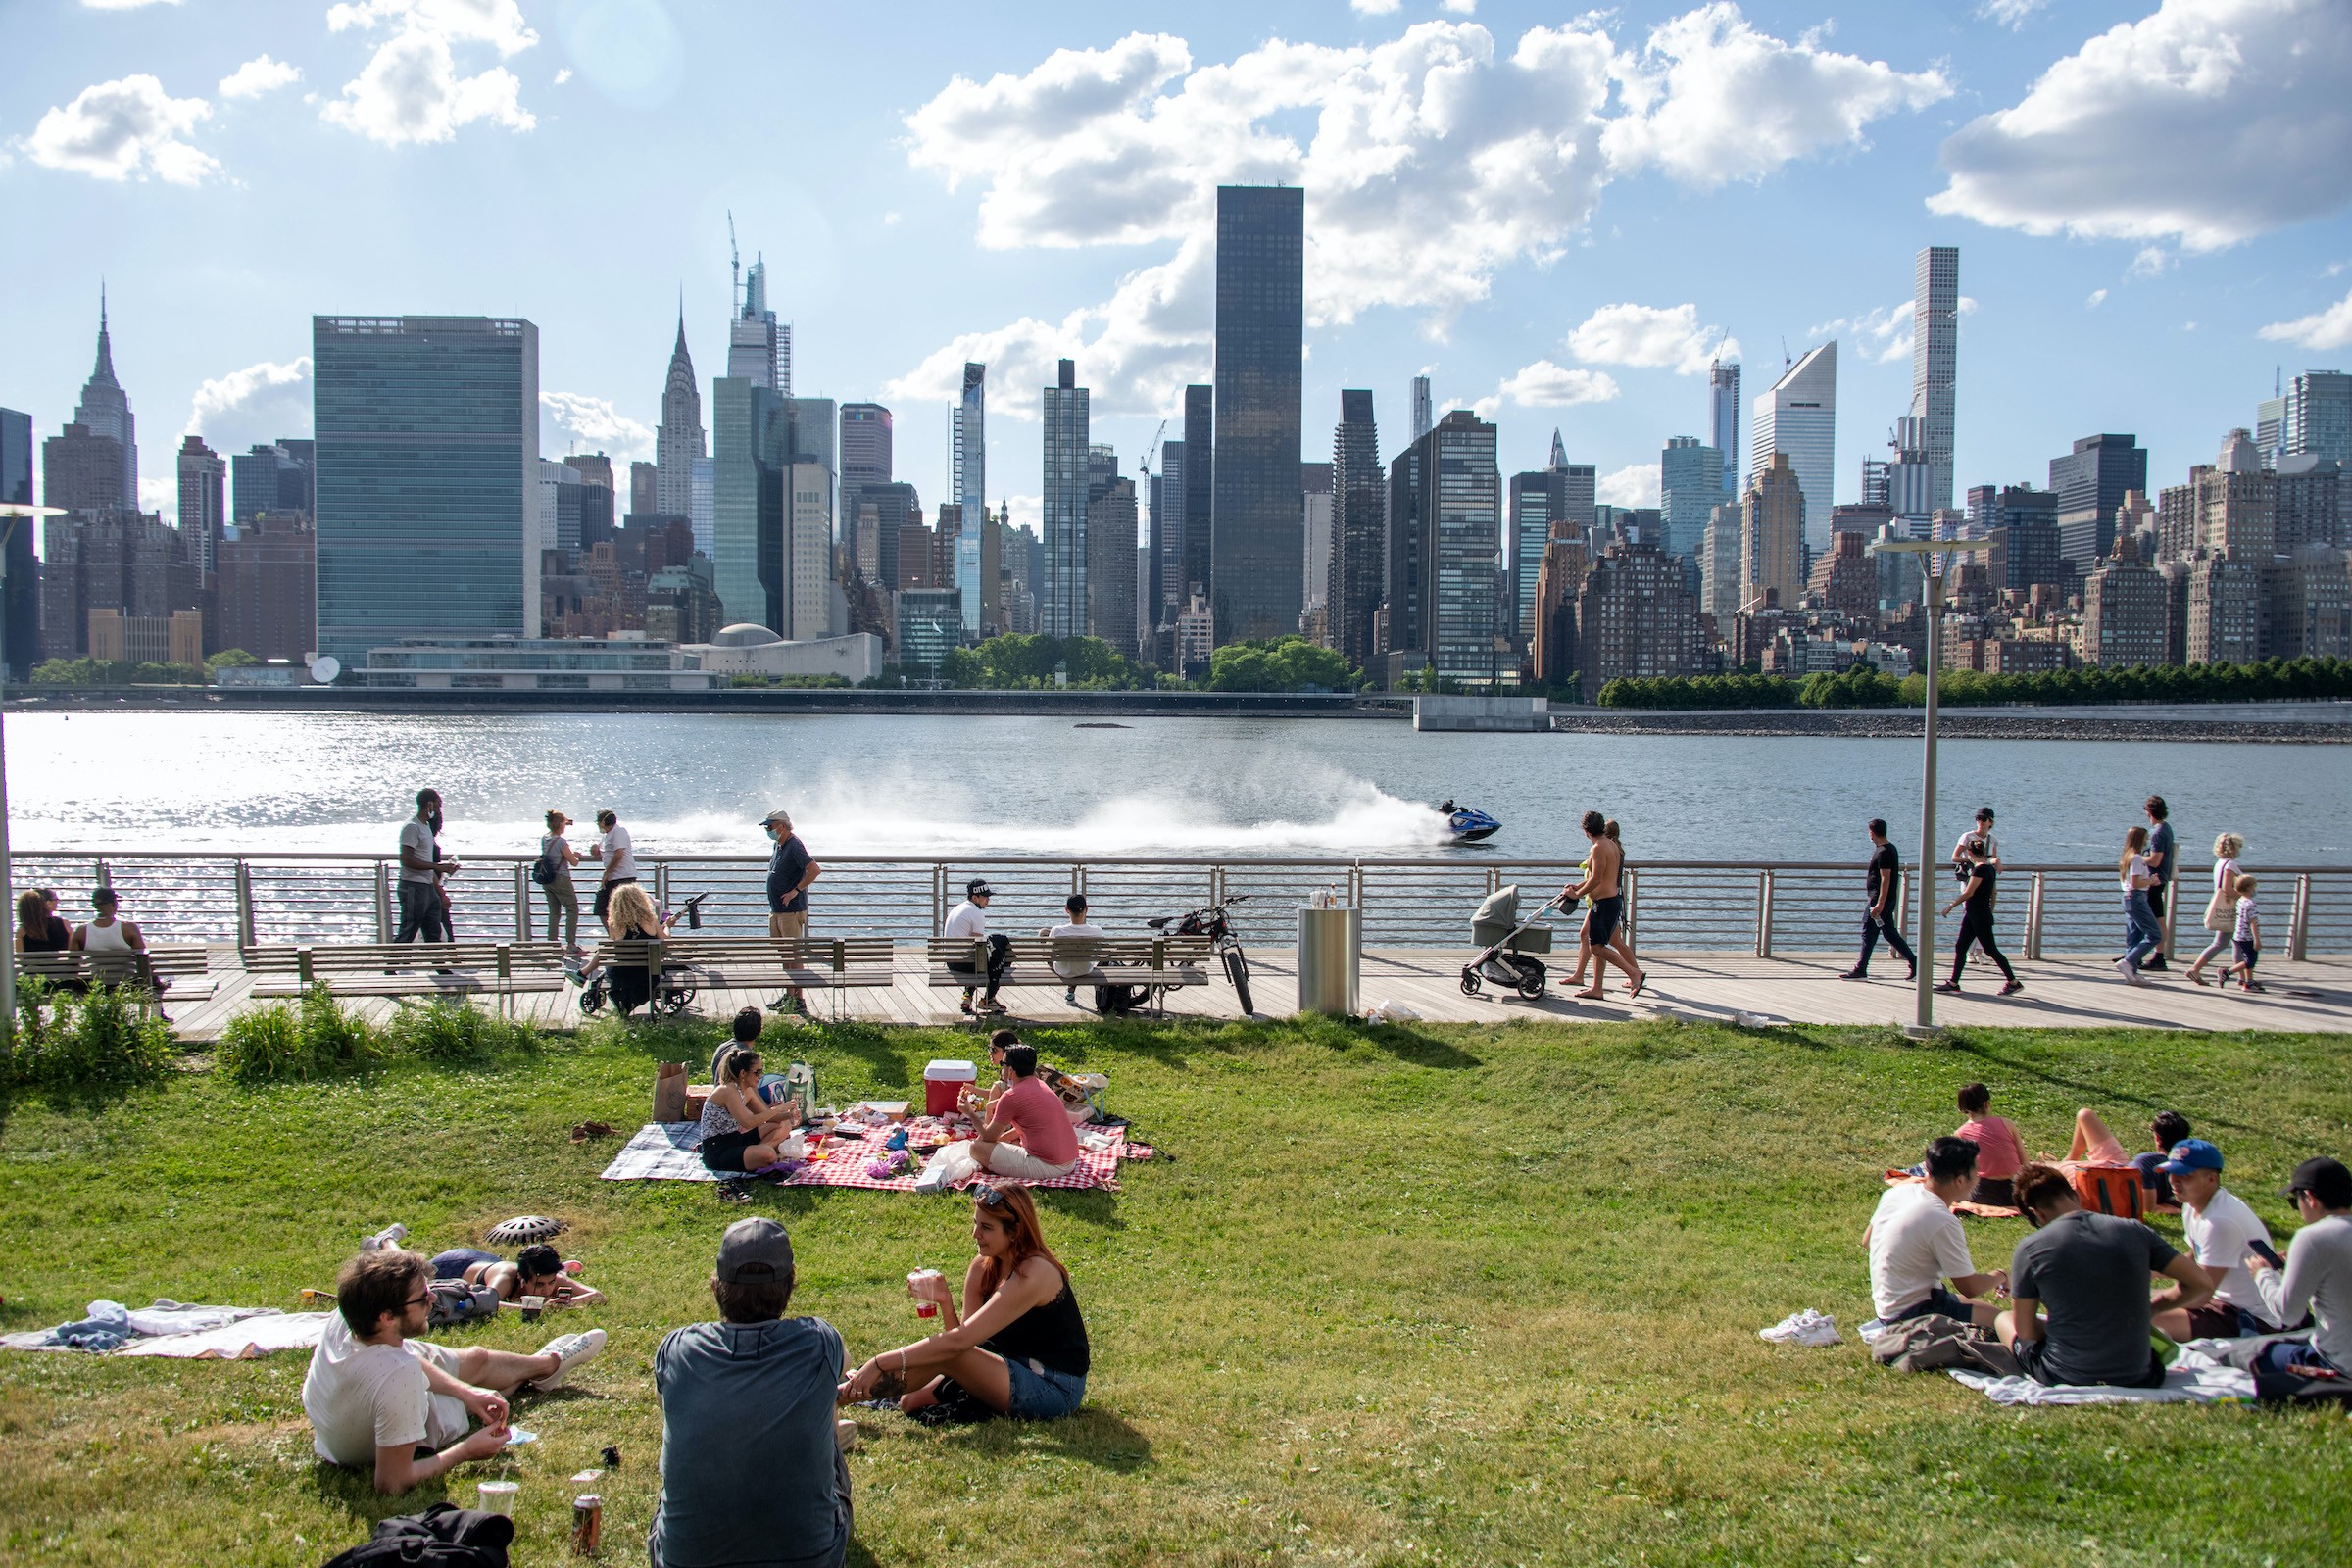 A riverside park facing the New York City skyline, full of people walking along the water or sitting in small groups on blankets on the grass.